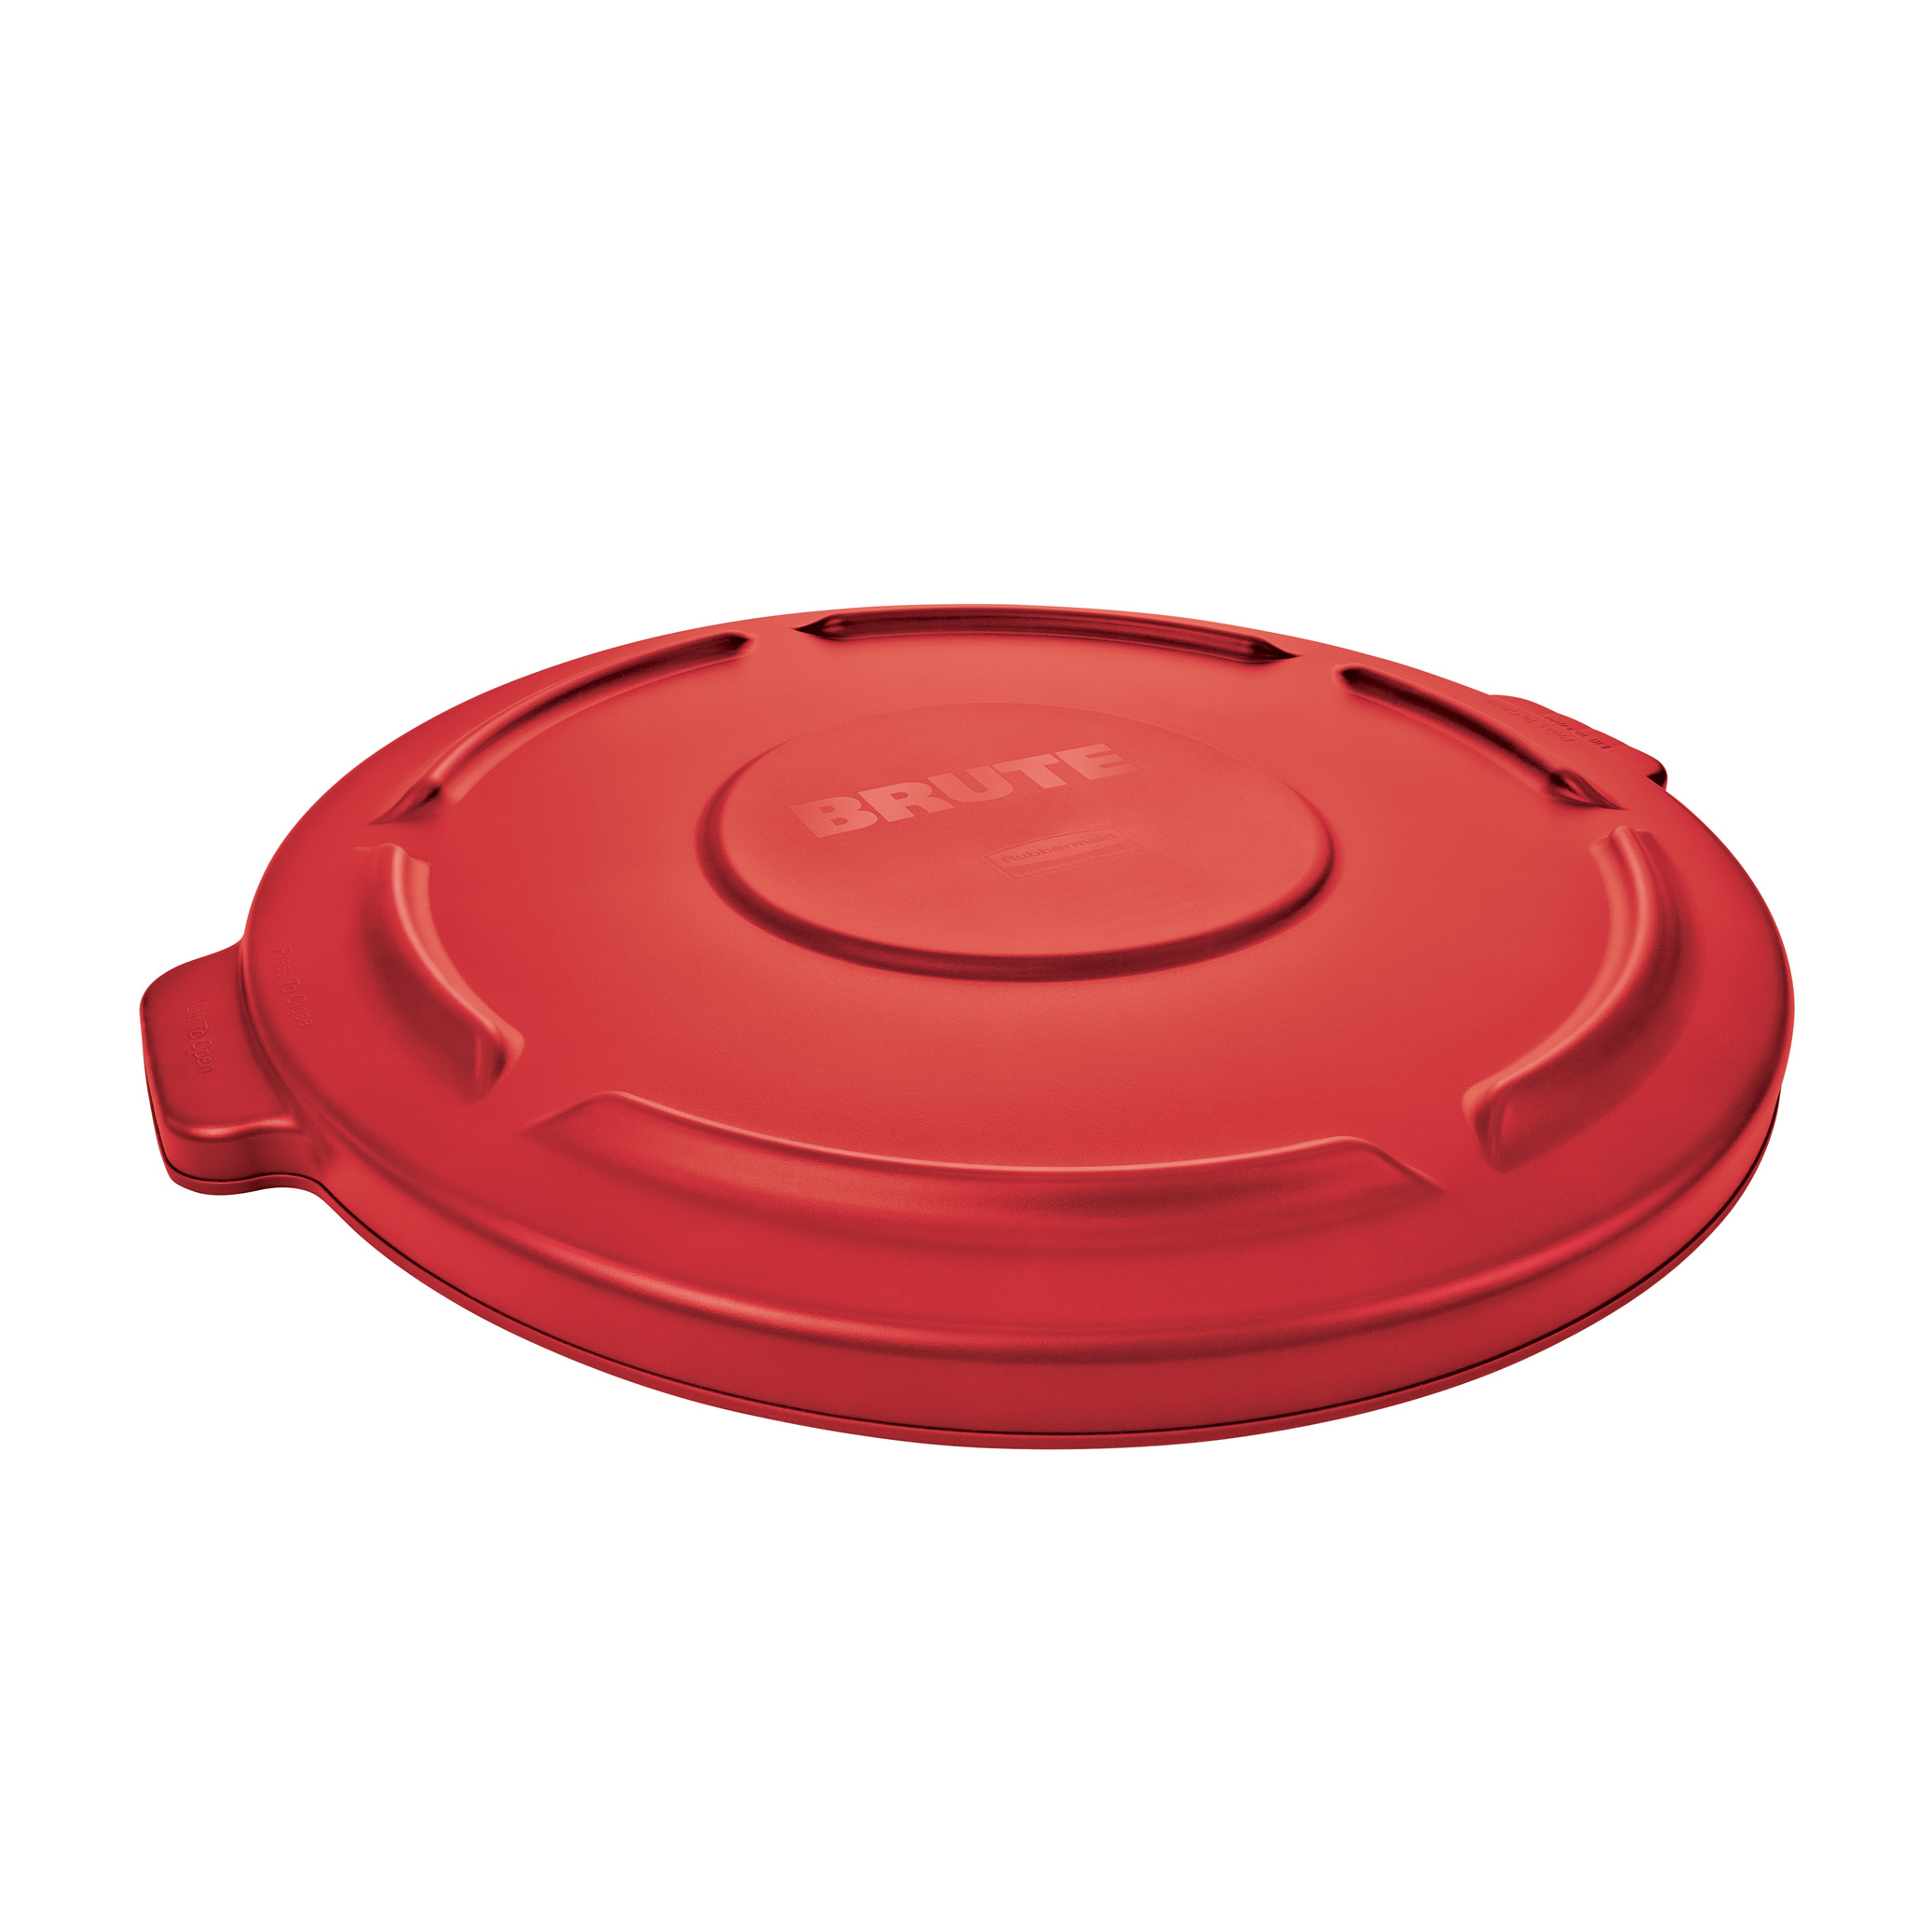 Rubbermaid Commercial Products FG261960RED trash receptacle lid / top